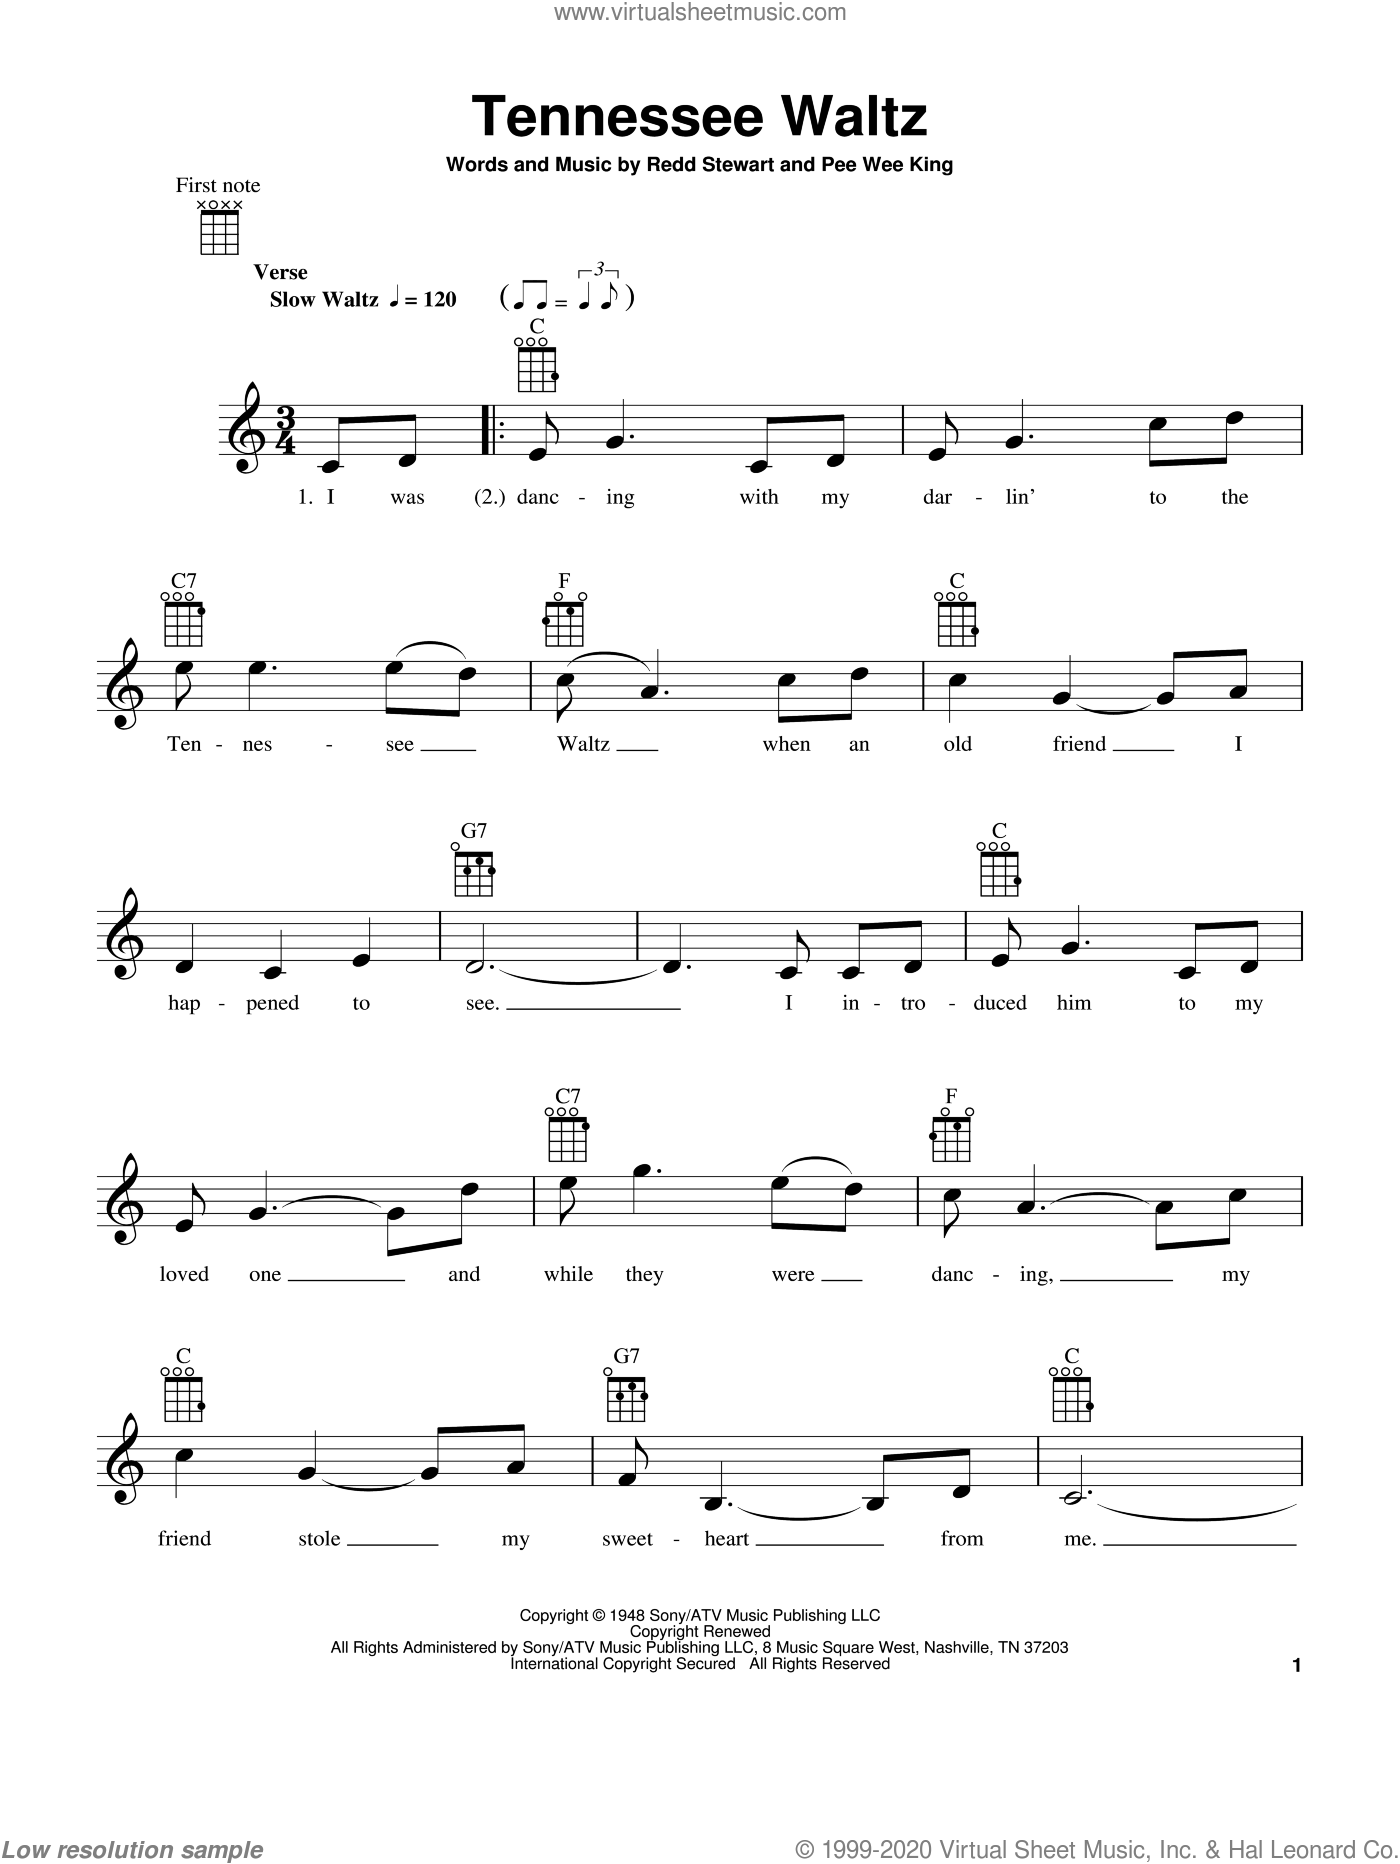 Tennessee Waltz sheet music for ukulele by Patti Page, Pee Wee King and Redd Stewart, intermediate skill level